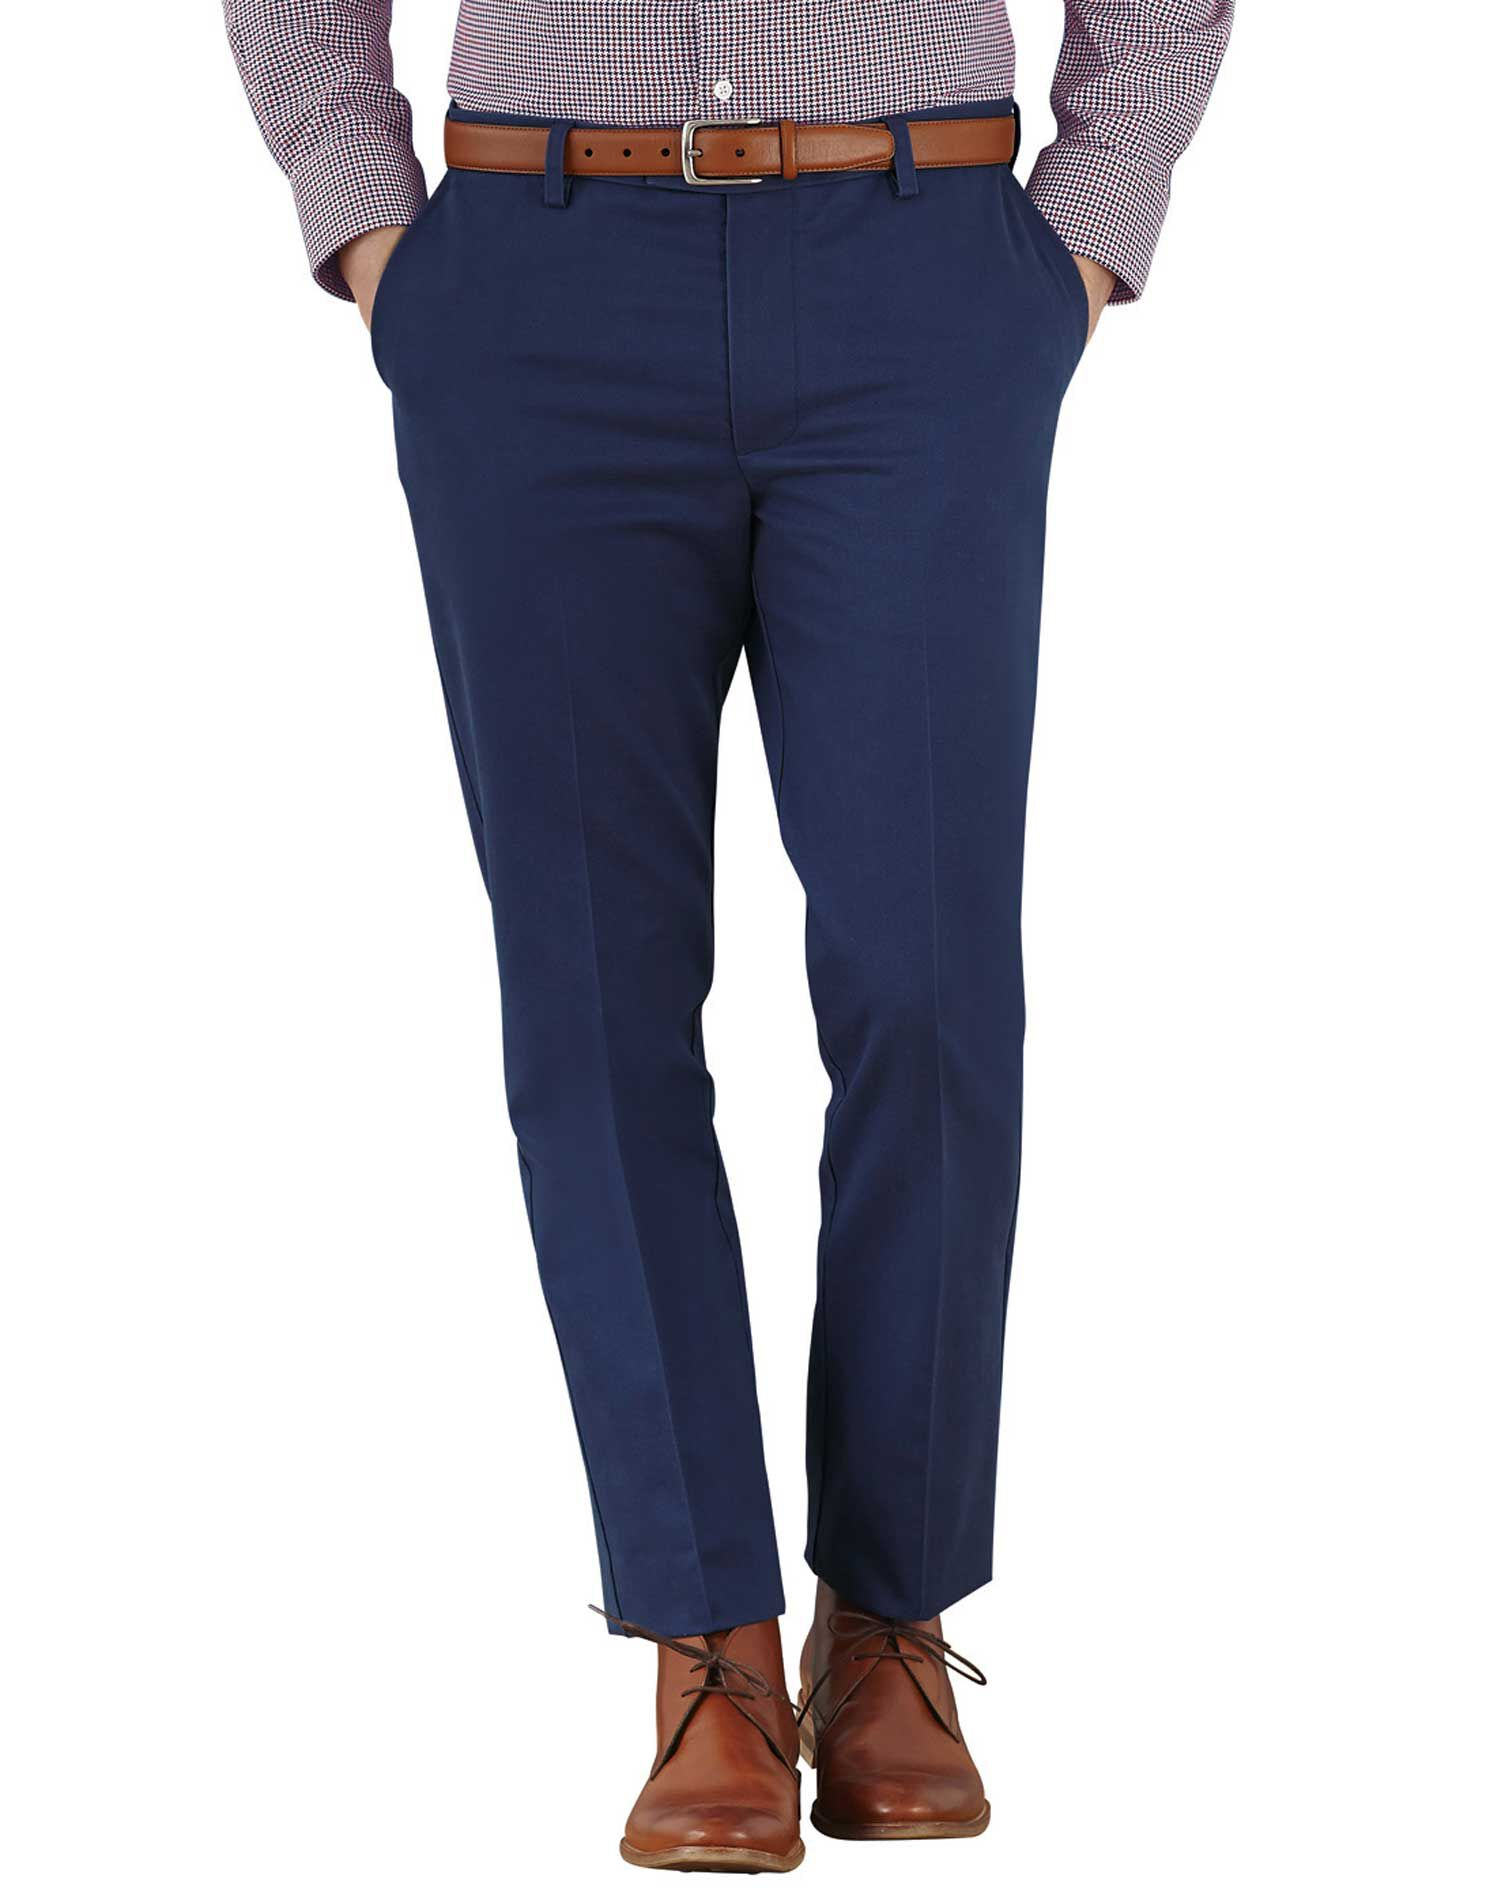 Marine Blue Extra Slim Fit Flat Front Non-Iron Cotton Chino Trousers Size W30 L34 by Charles Tyrwhit